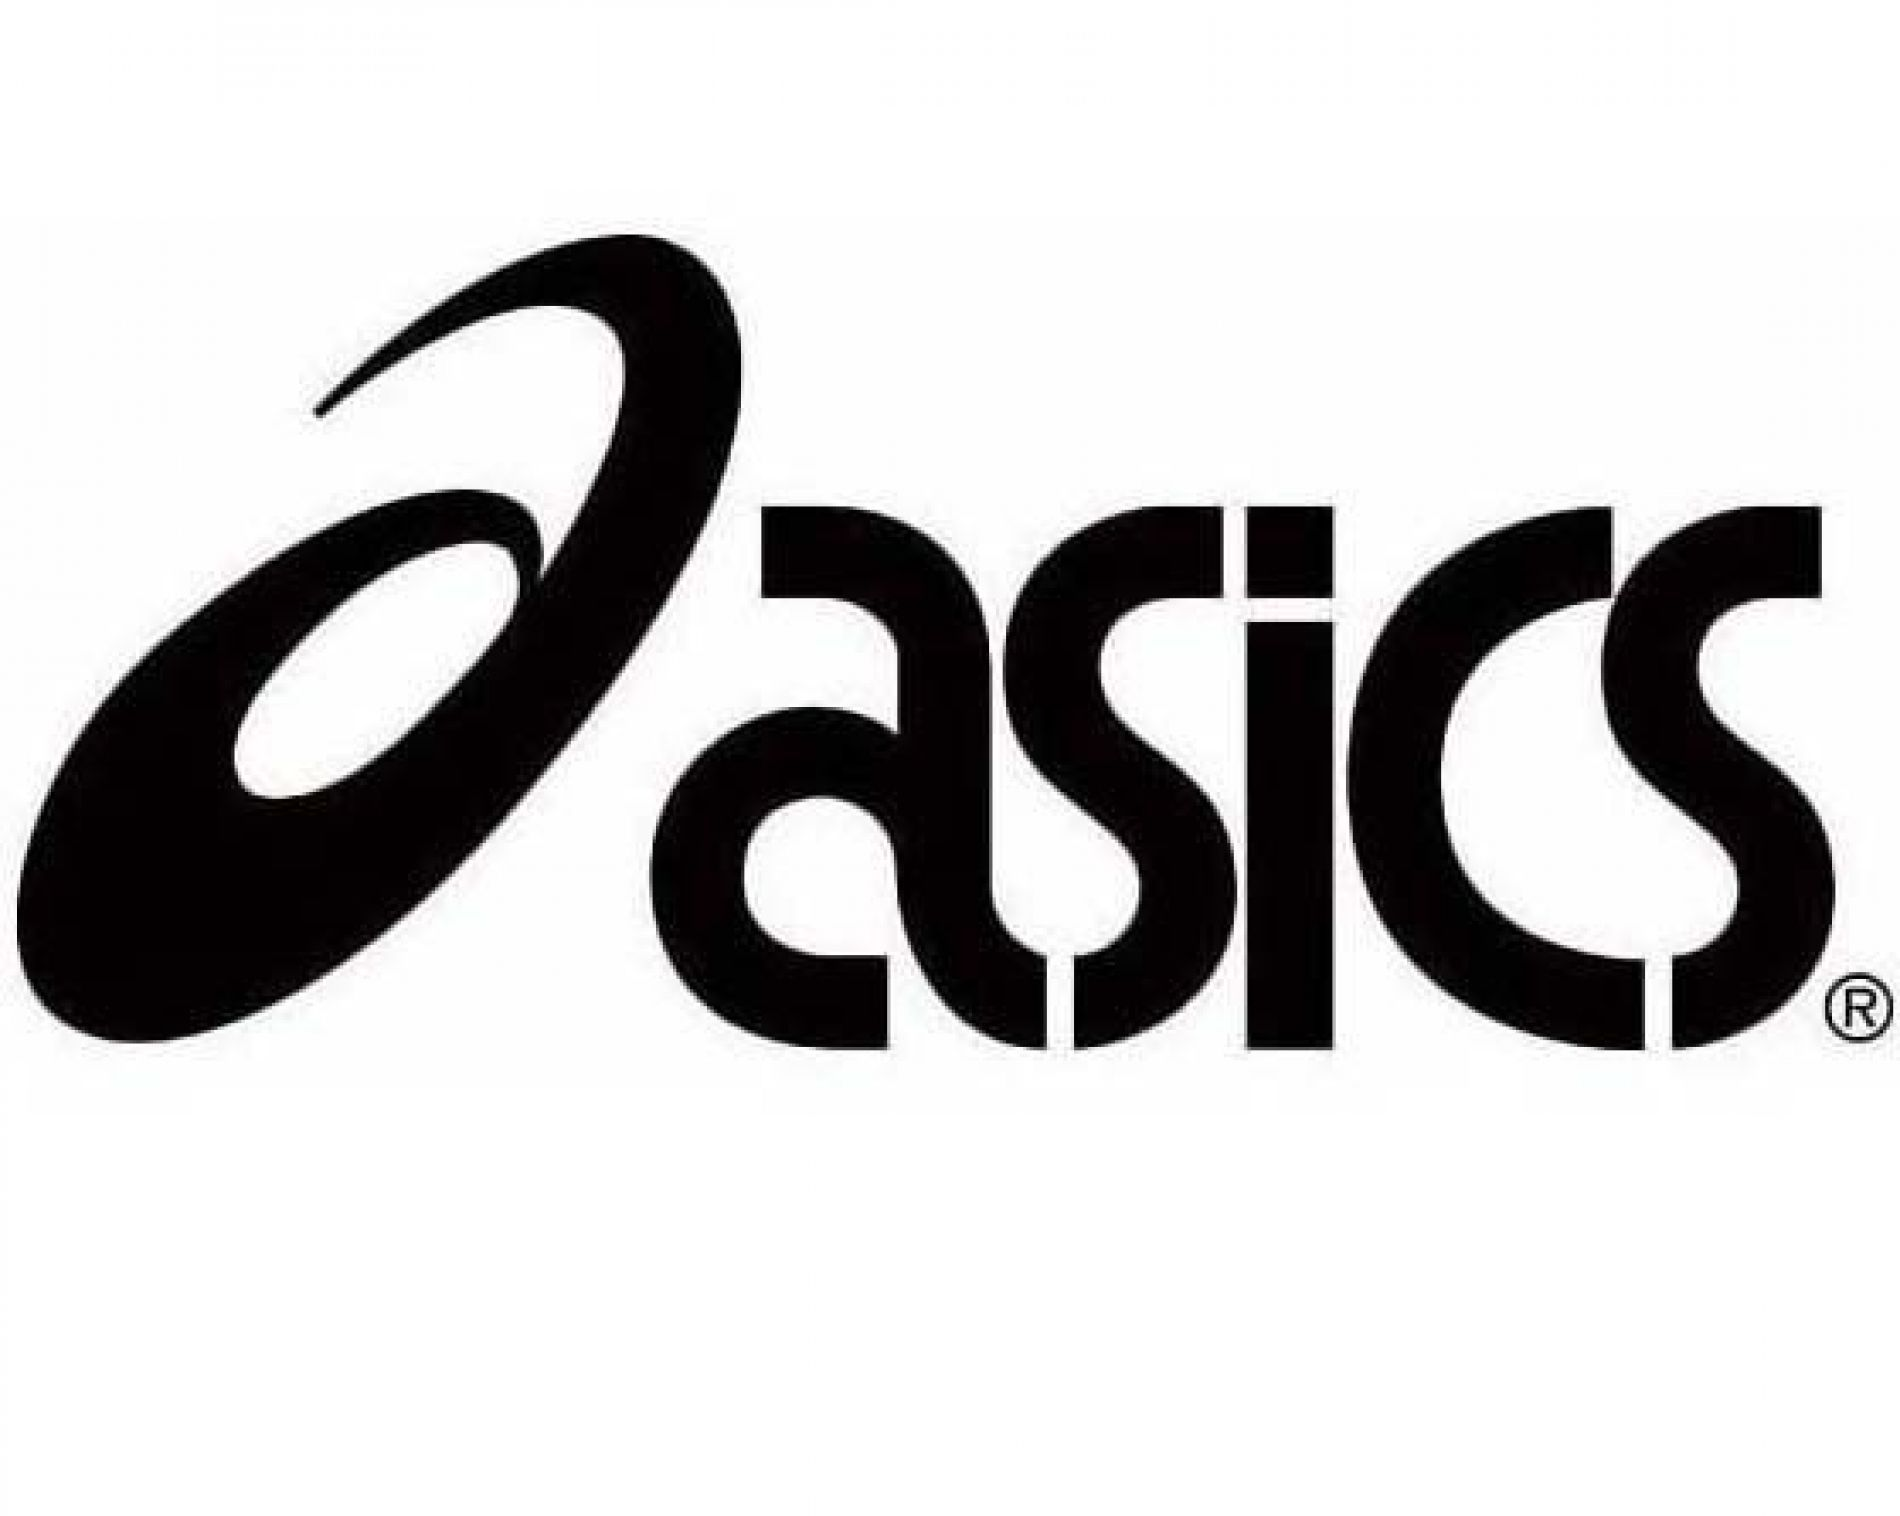 'Onderkoffer - Beast' in online Asics ad!